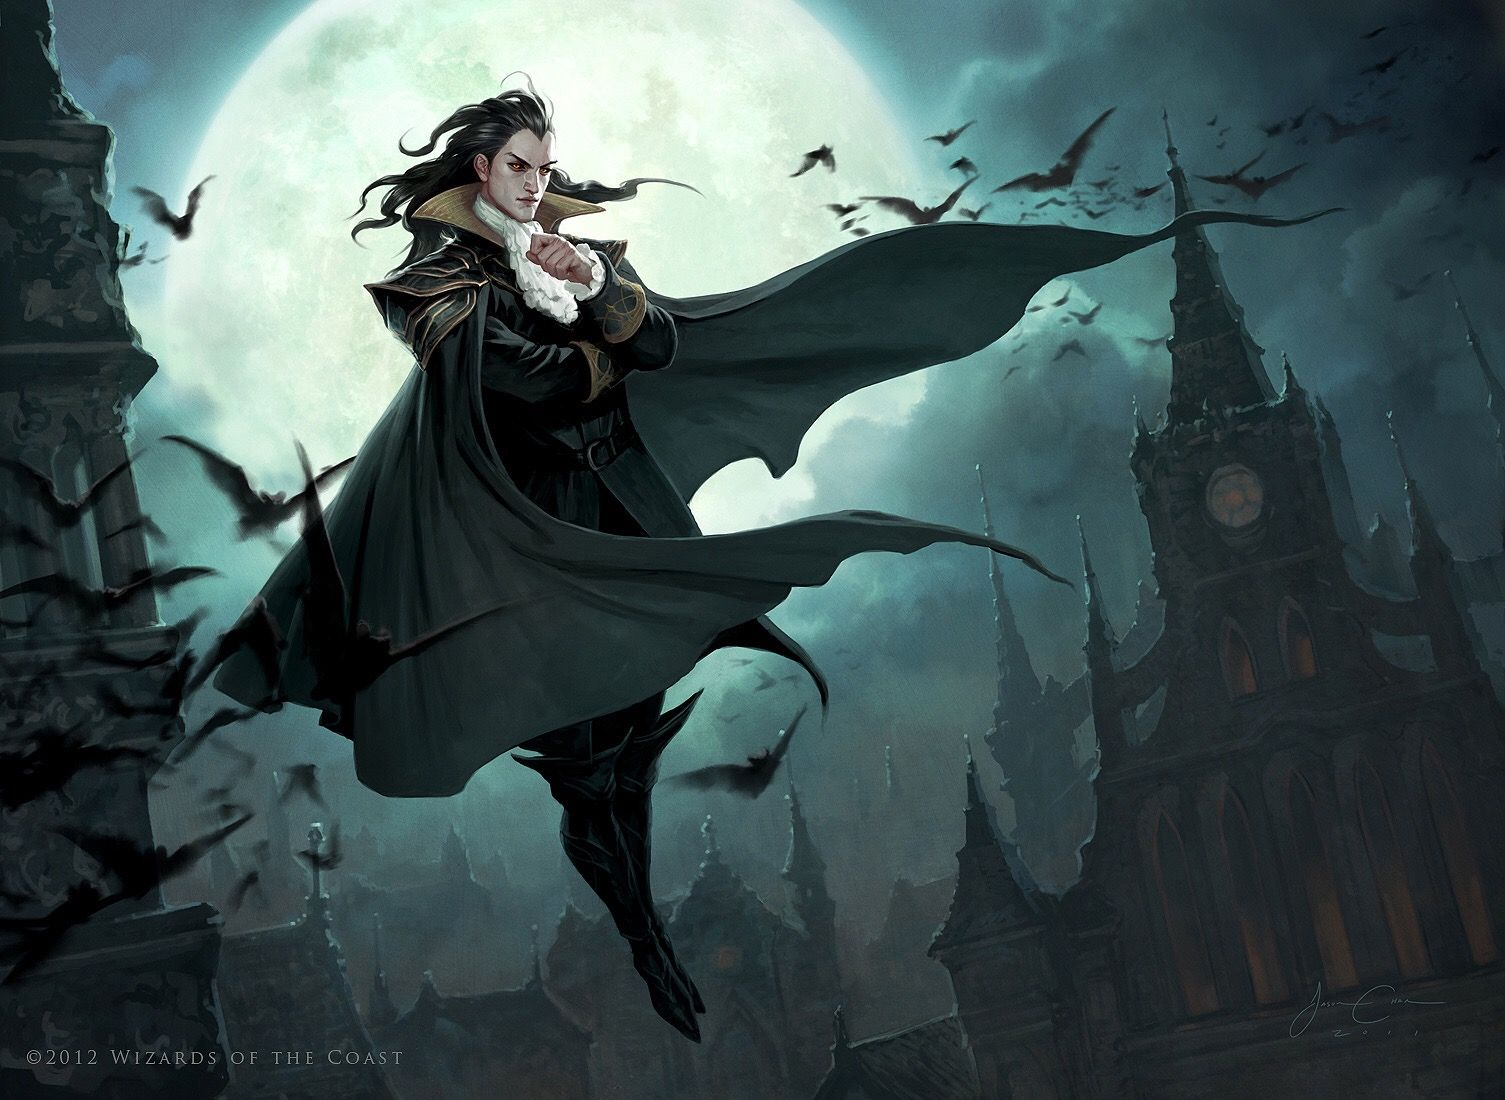 Pin By Chandlyr Shupe On Characters In 2019 Vampire Art